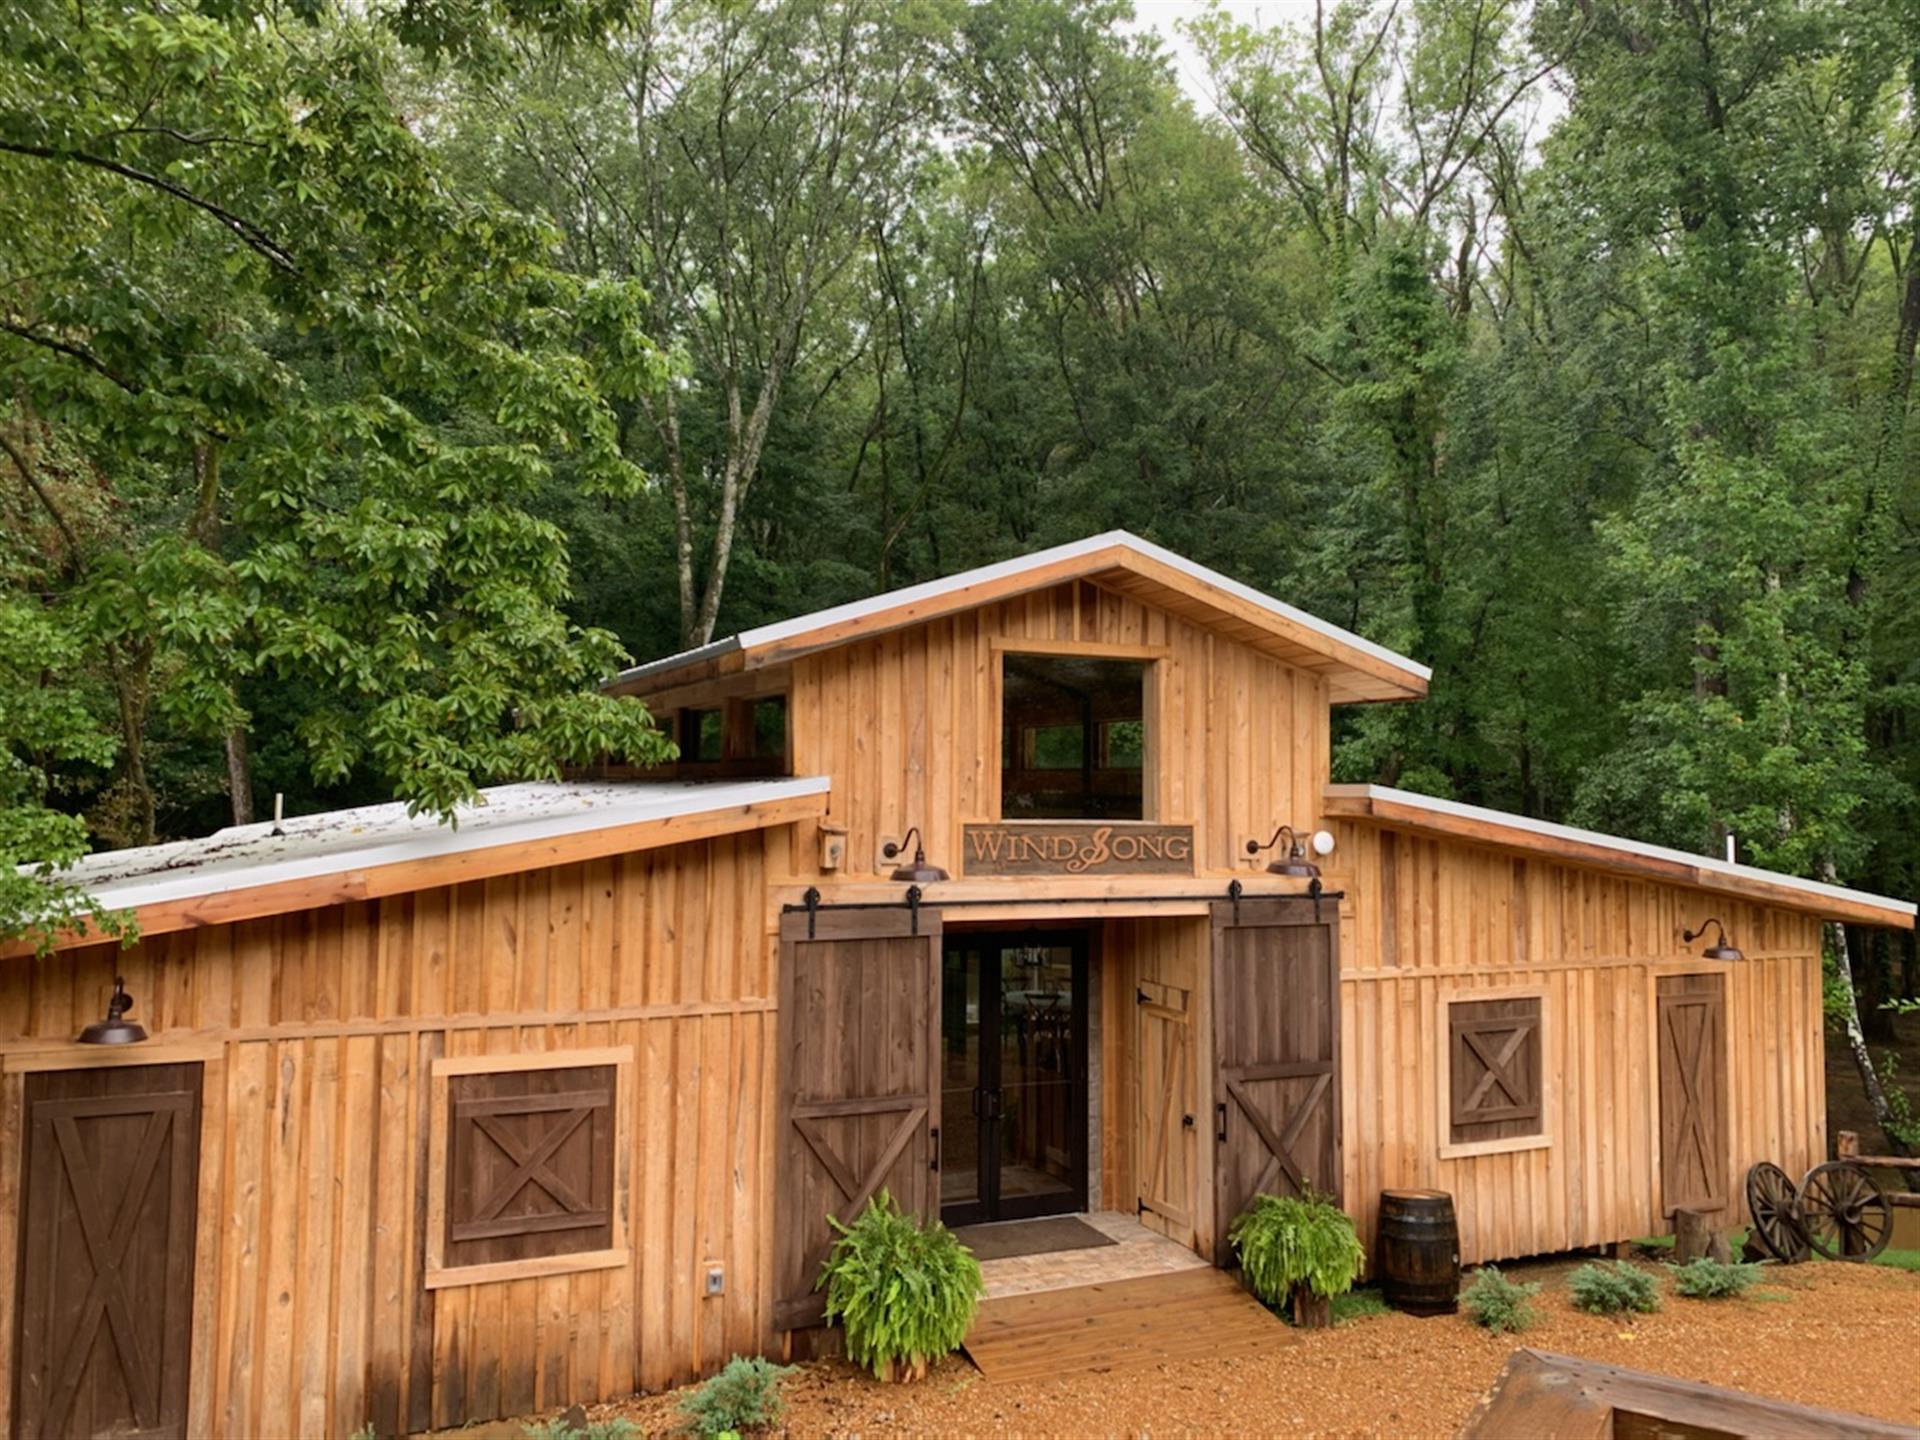 """wooden cabin with double doors, sign above doors that says """" WIND SONG"""" with the S as a treble clef. two shrubs next to the door and forest of trees in background."""